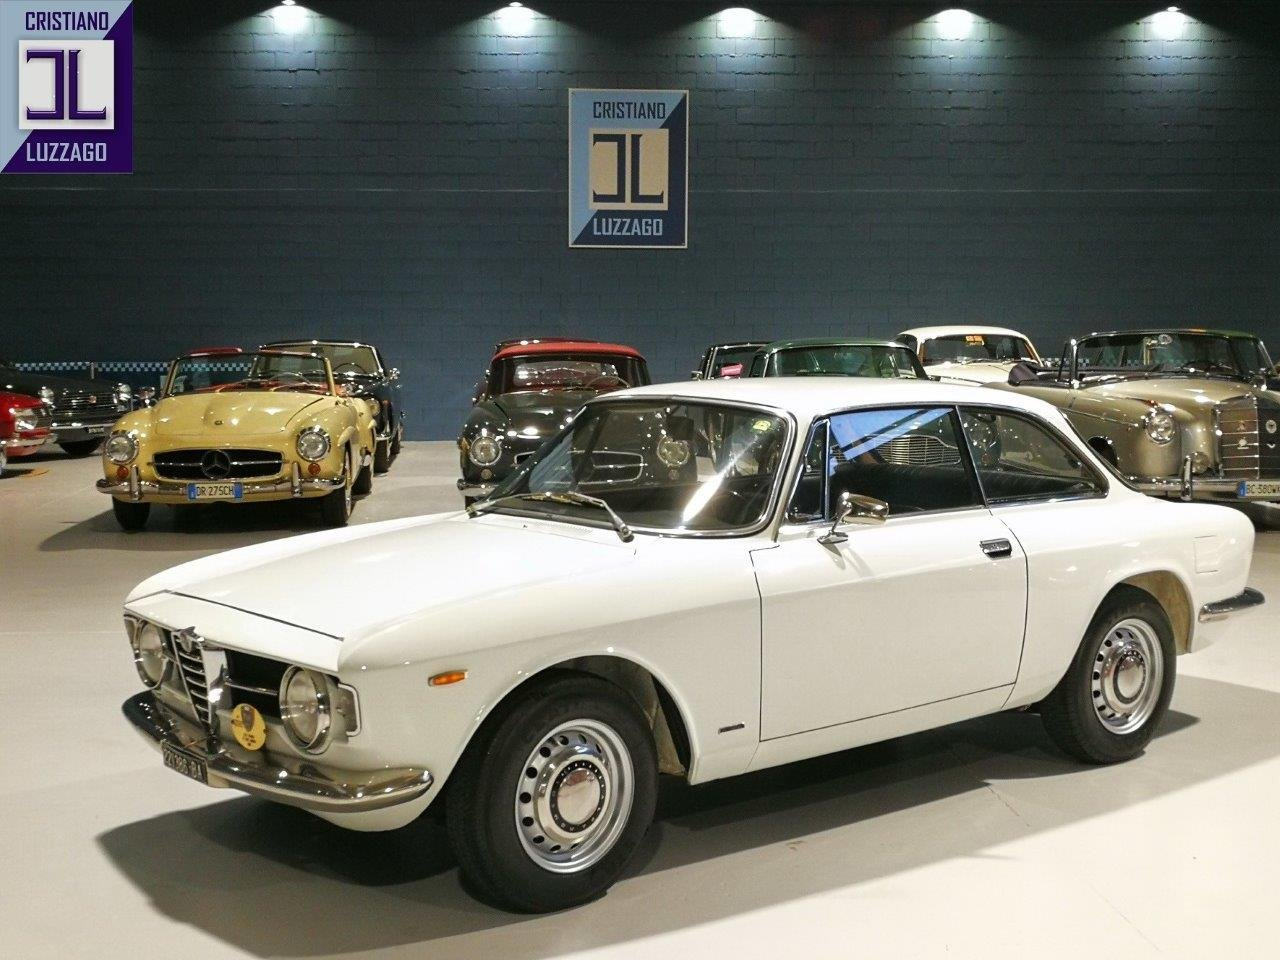 1968 ALFA ROMEO GT JUNIOR 1300 SCALINO SOLD (picture 1 of 6)